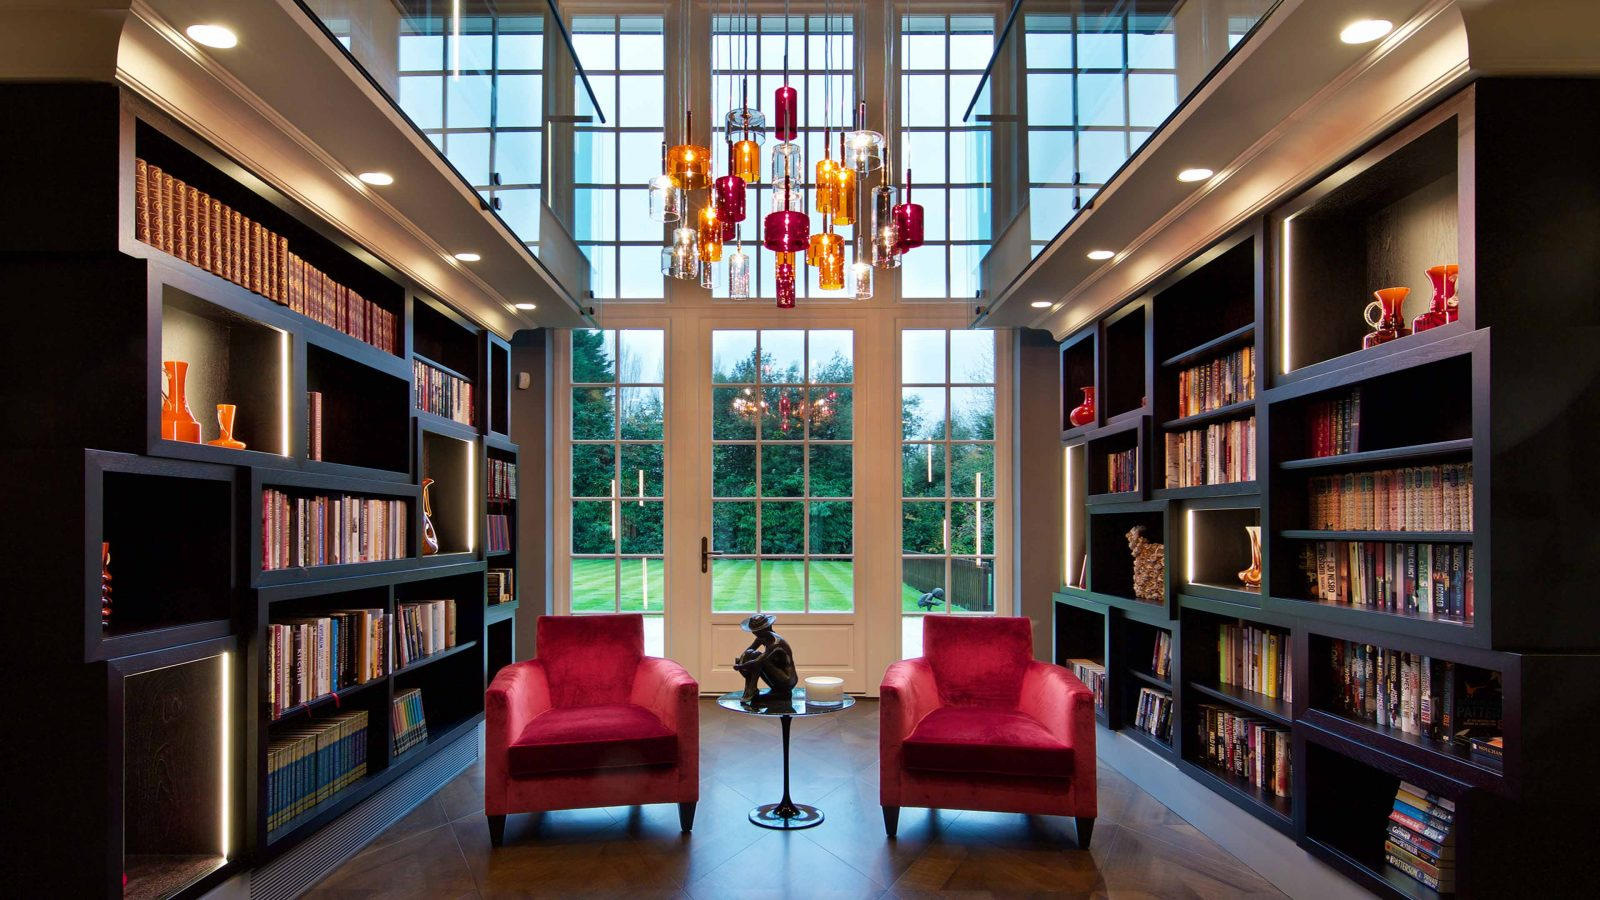 Residential Lighting Design Grand Atrium Space Bookshelves Pendant Windows Consultants Studio N